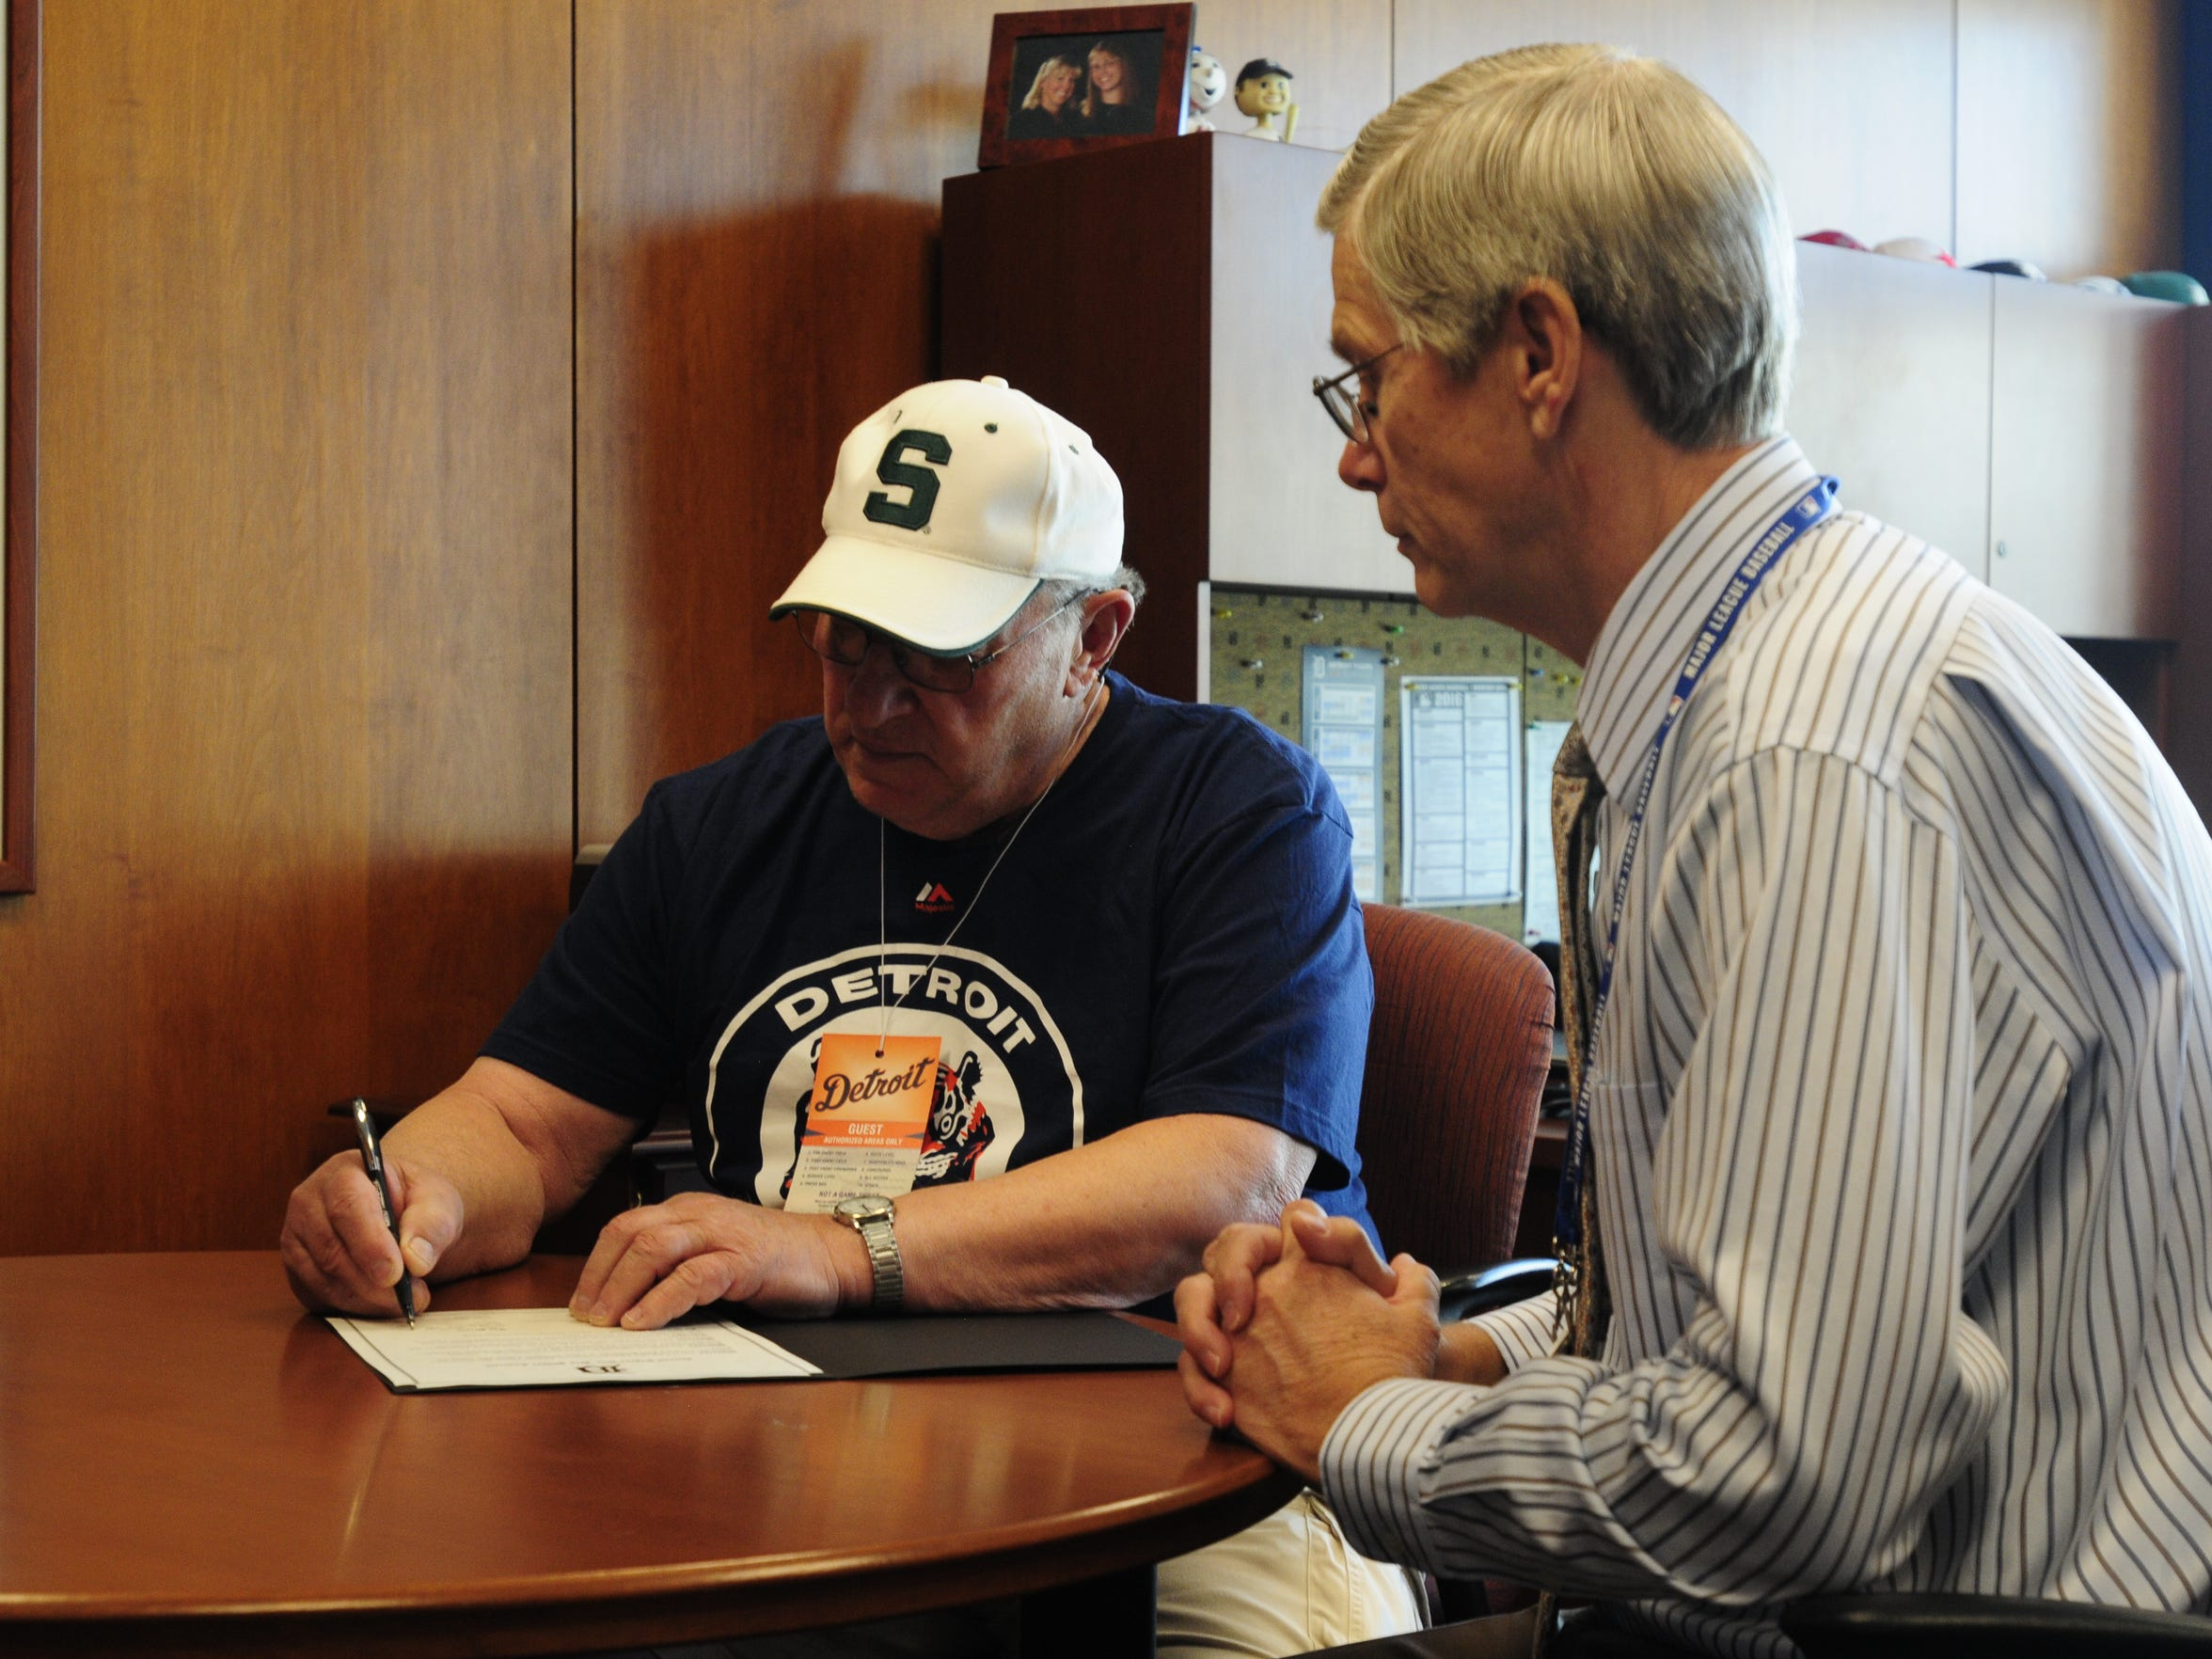 Earl Robinette of Fort Gratiot signs a one day contract